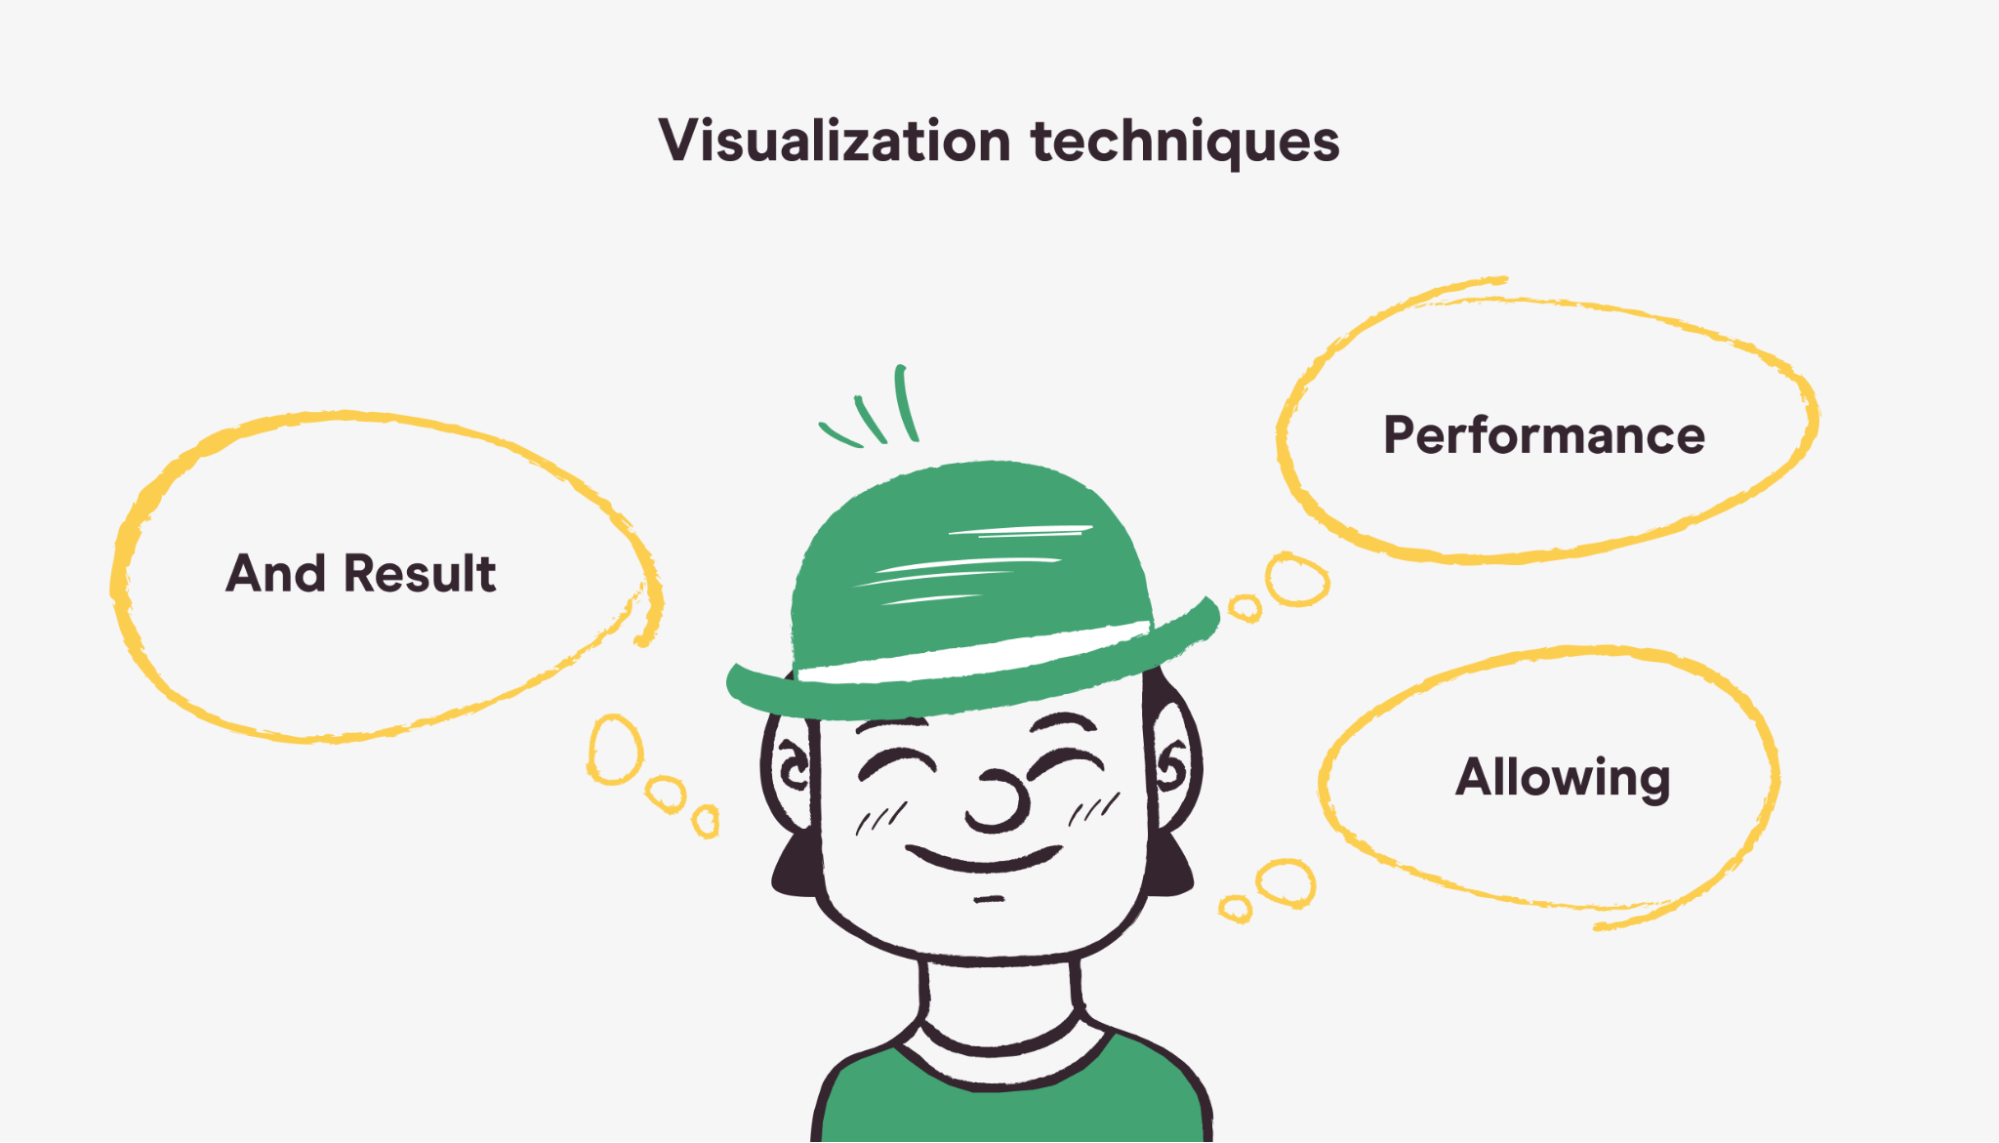 The top three visualization techniques